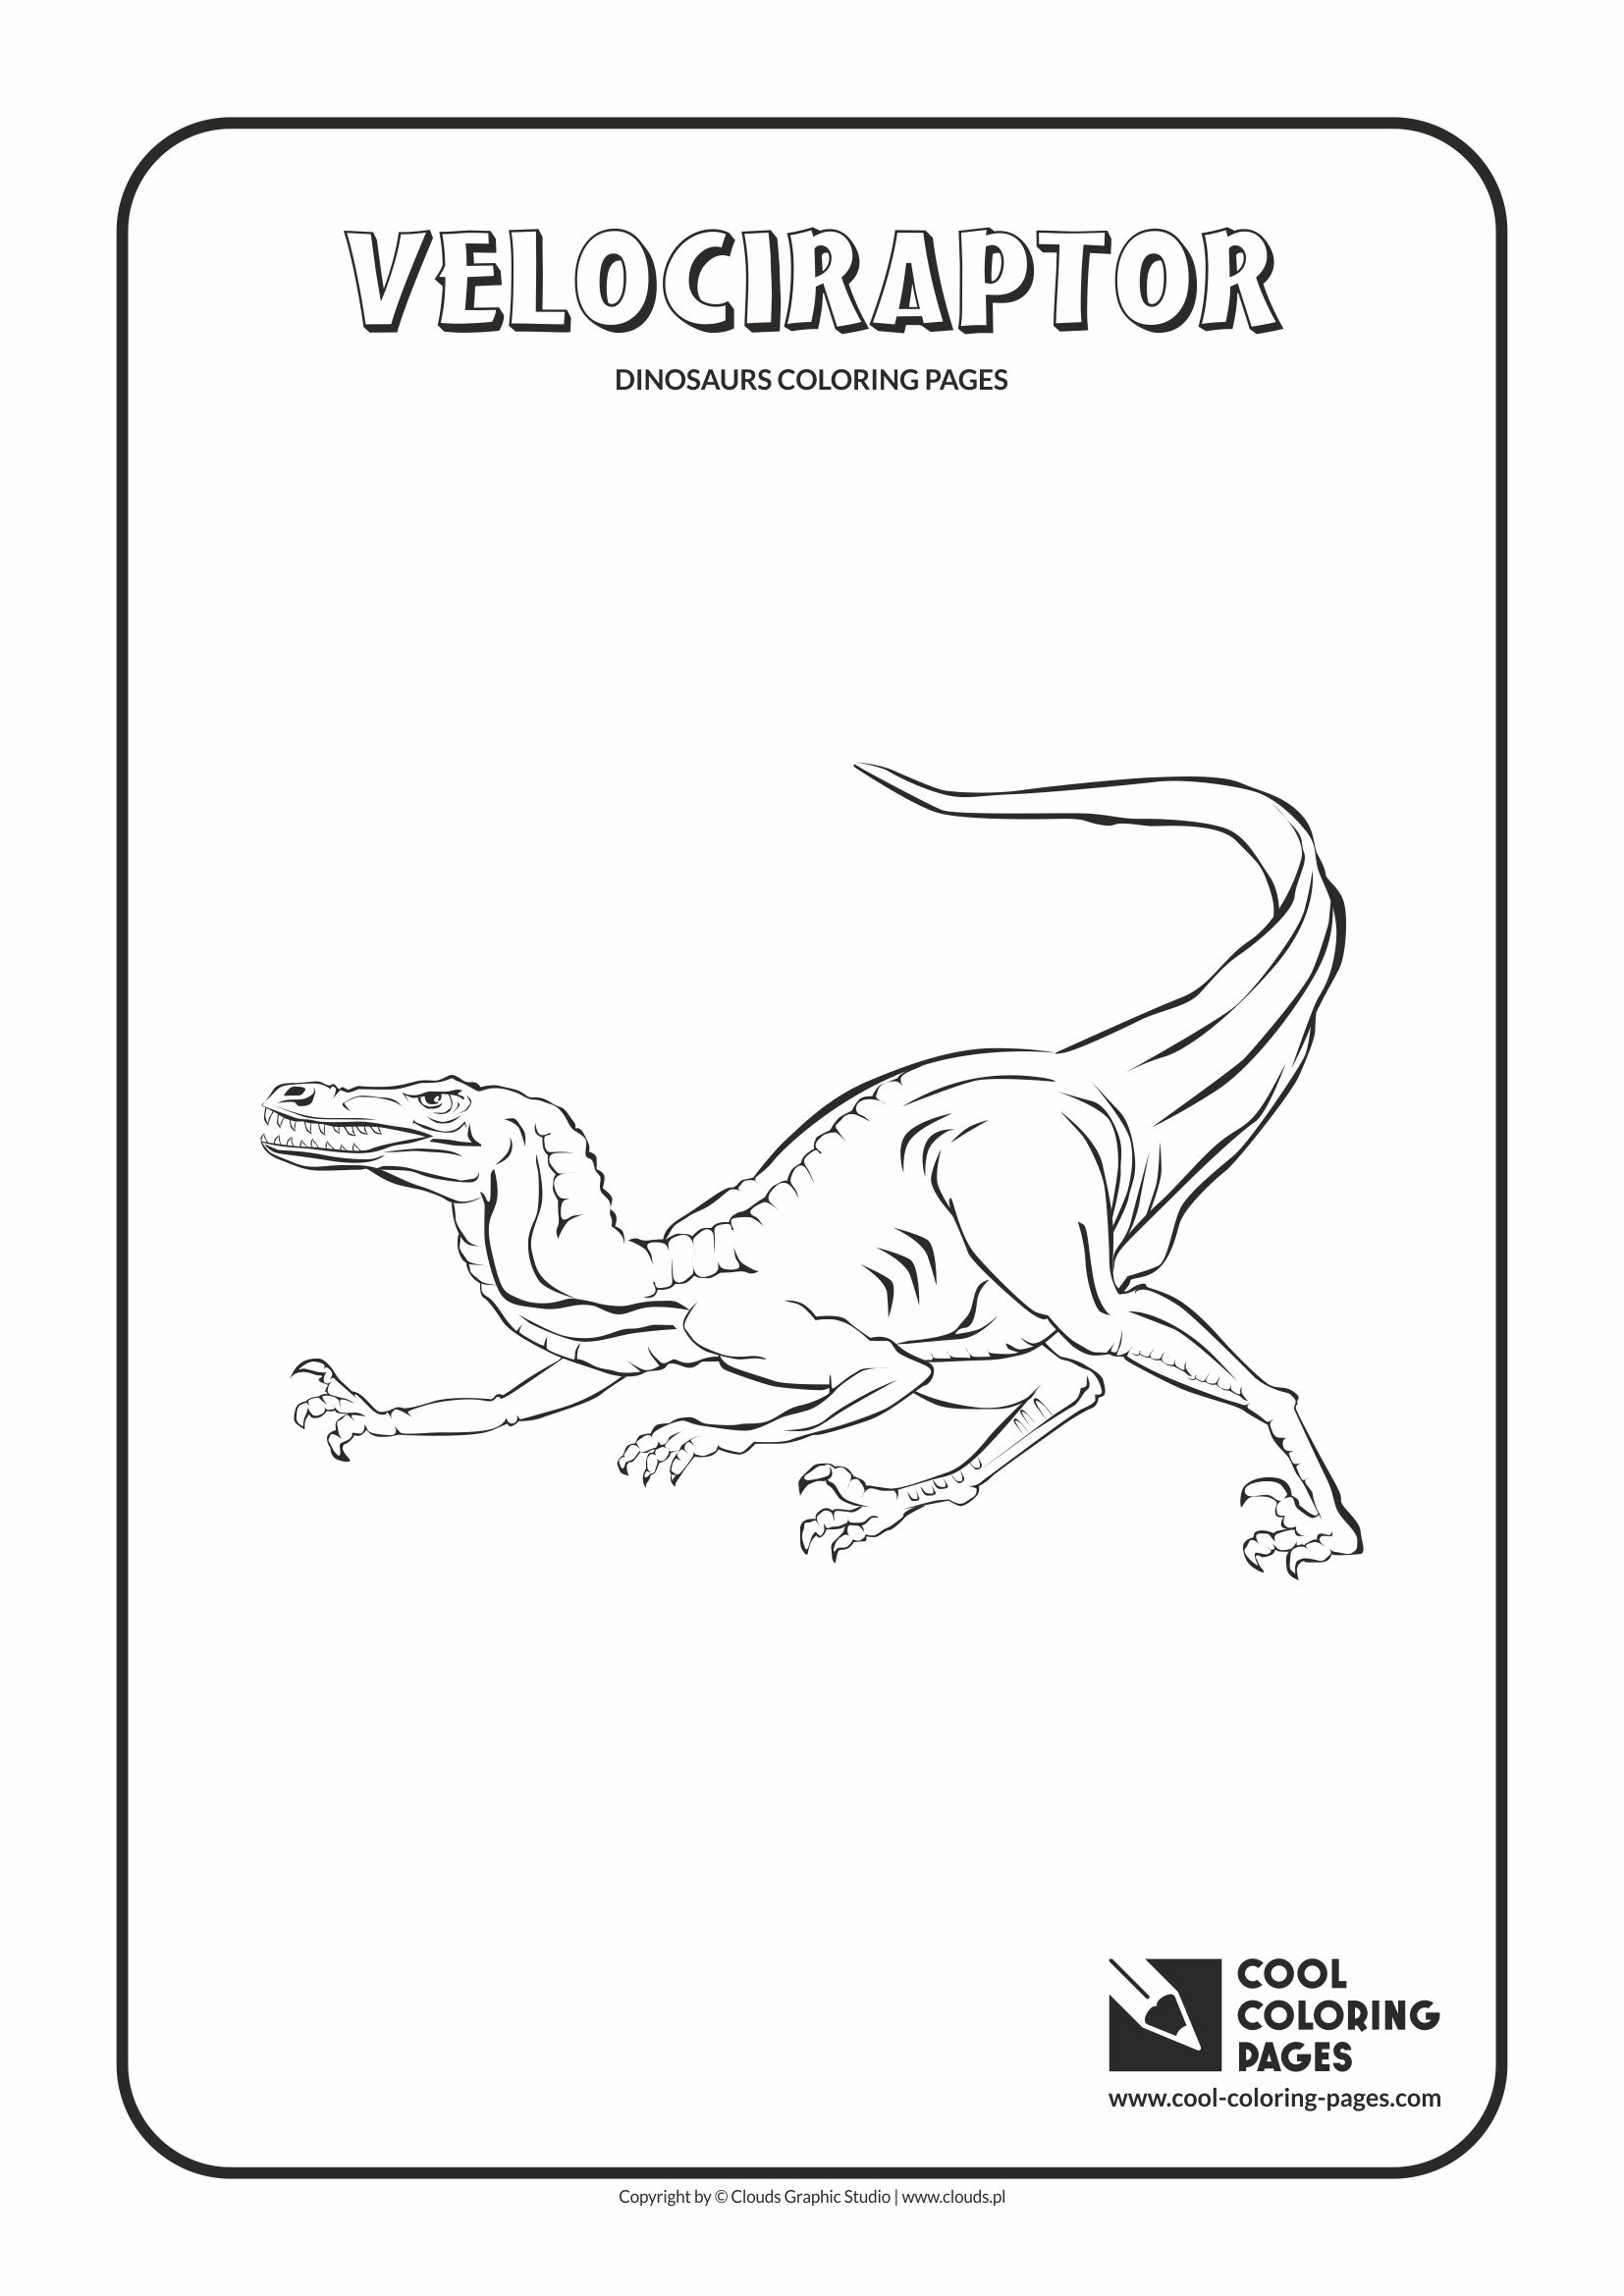 92 Velociraptor Coloring Pages Velociraptor Coloring